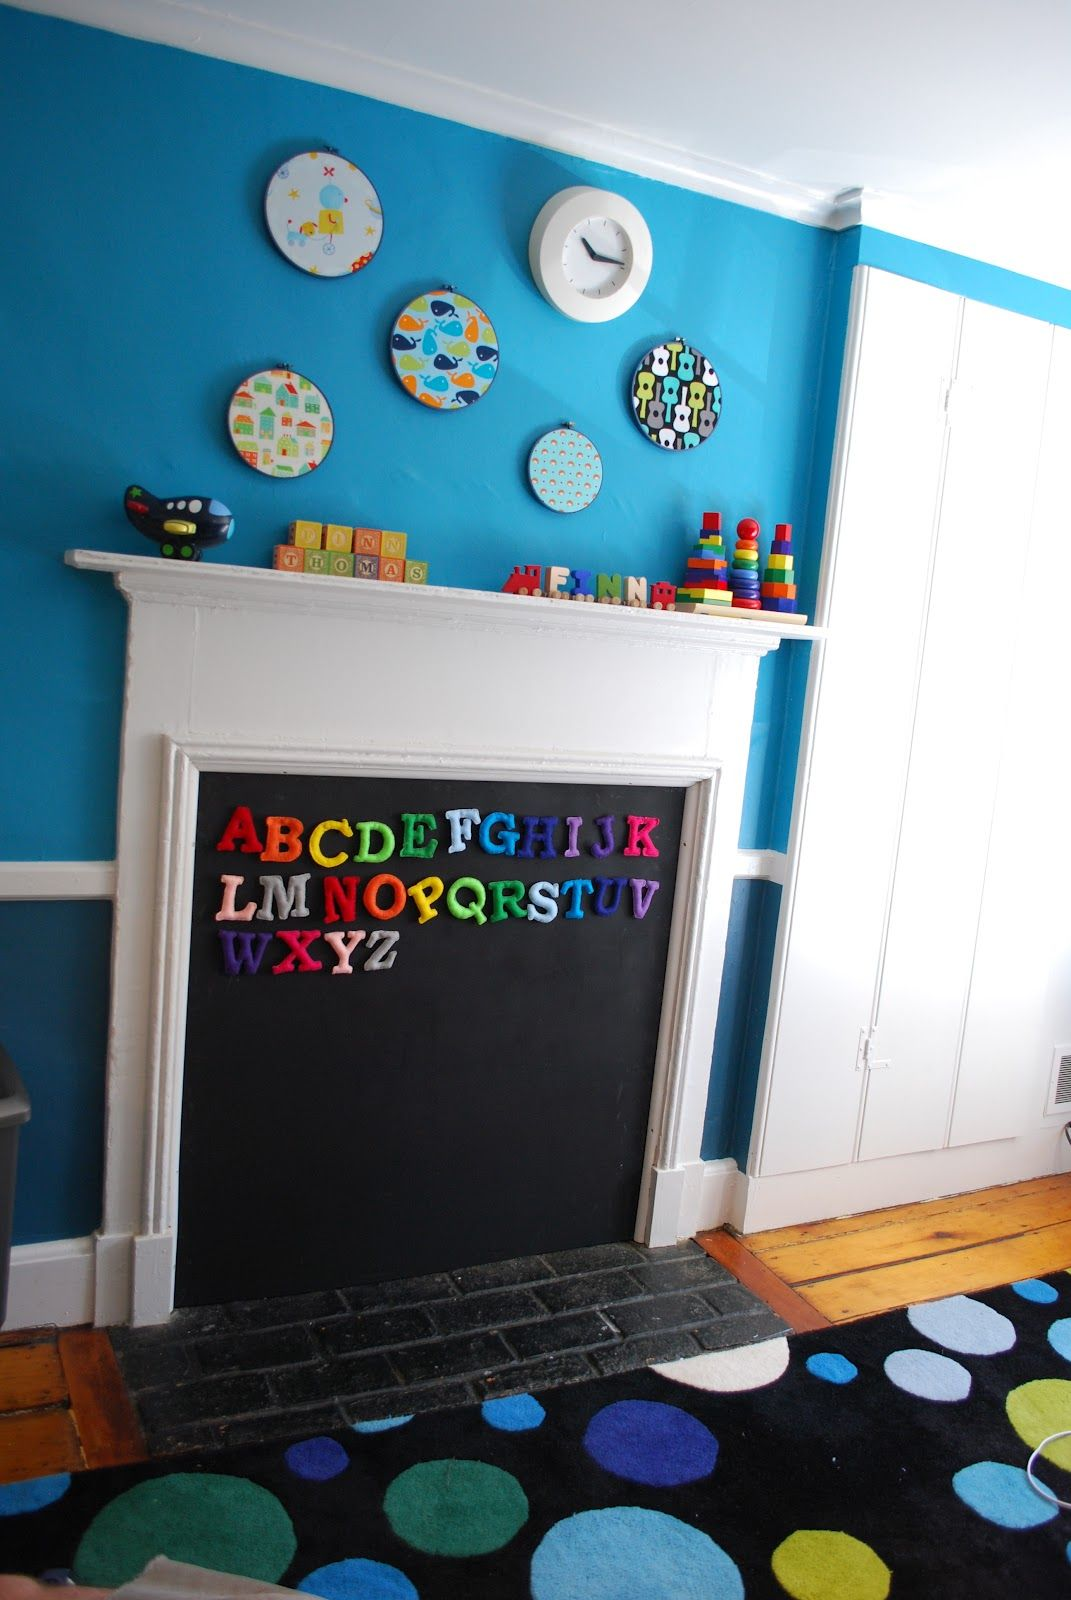 Magnetic Fireplace Doors Kid Proof The Fireplace With A Magnetic Chalkboard